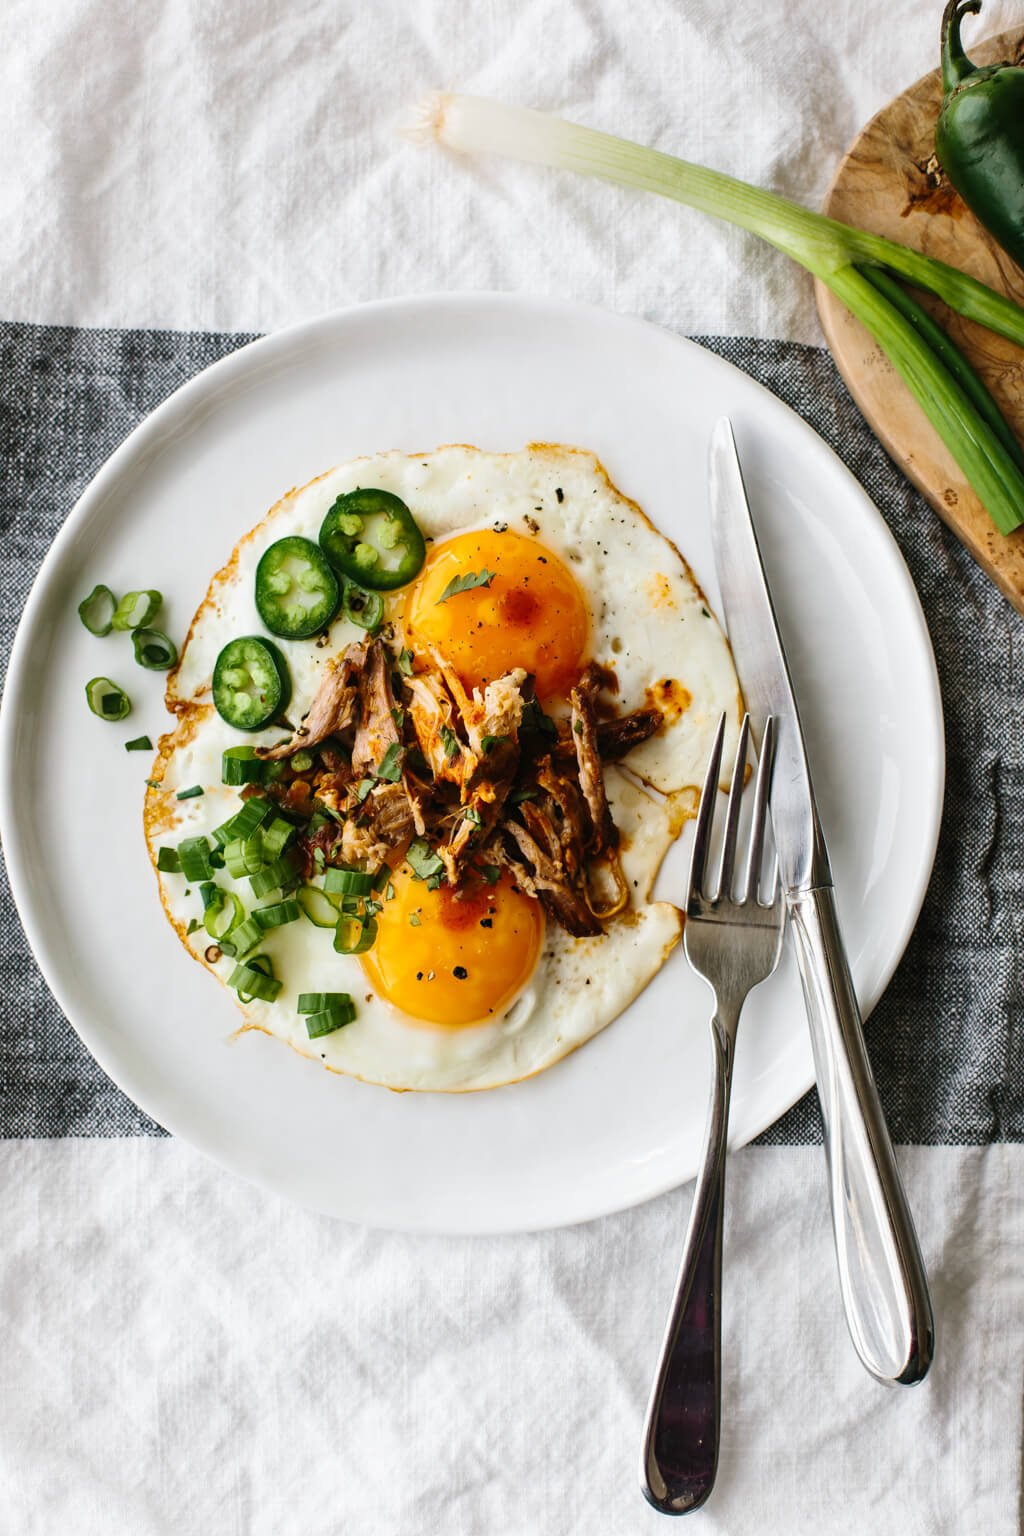 Spicy pulled pork fried eggs are a combination of hot sauce and jalapenos alongside runny eggs and flavorful pulled pork. It's a low-carb, keto, paleo, Whole30 breakfast recipe.